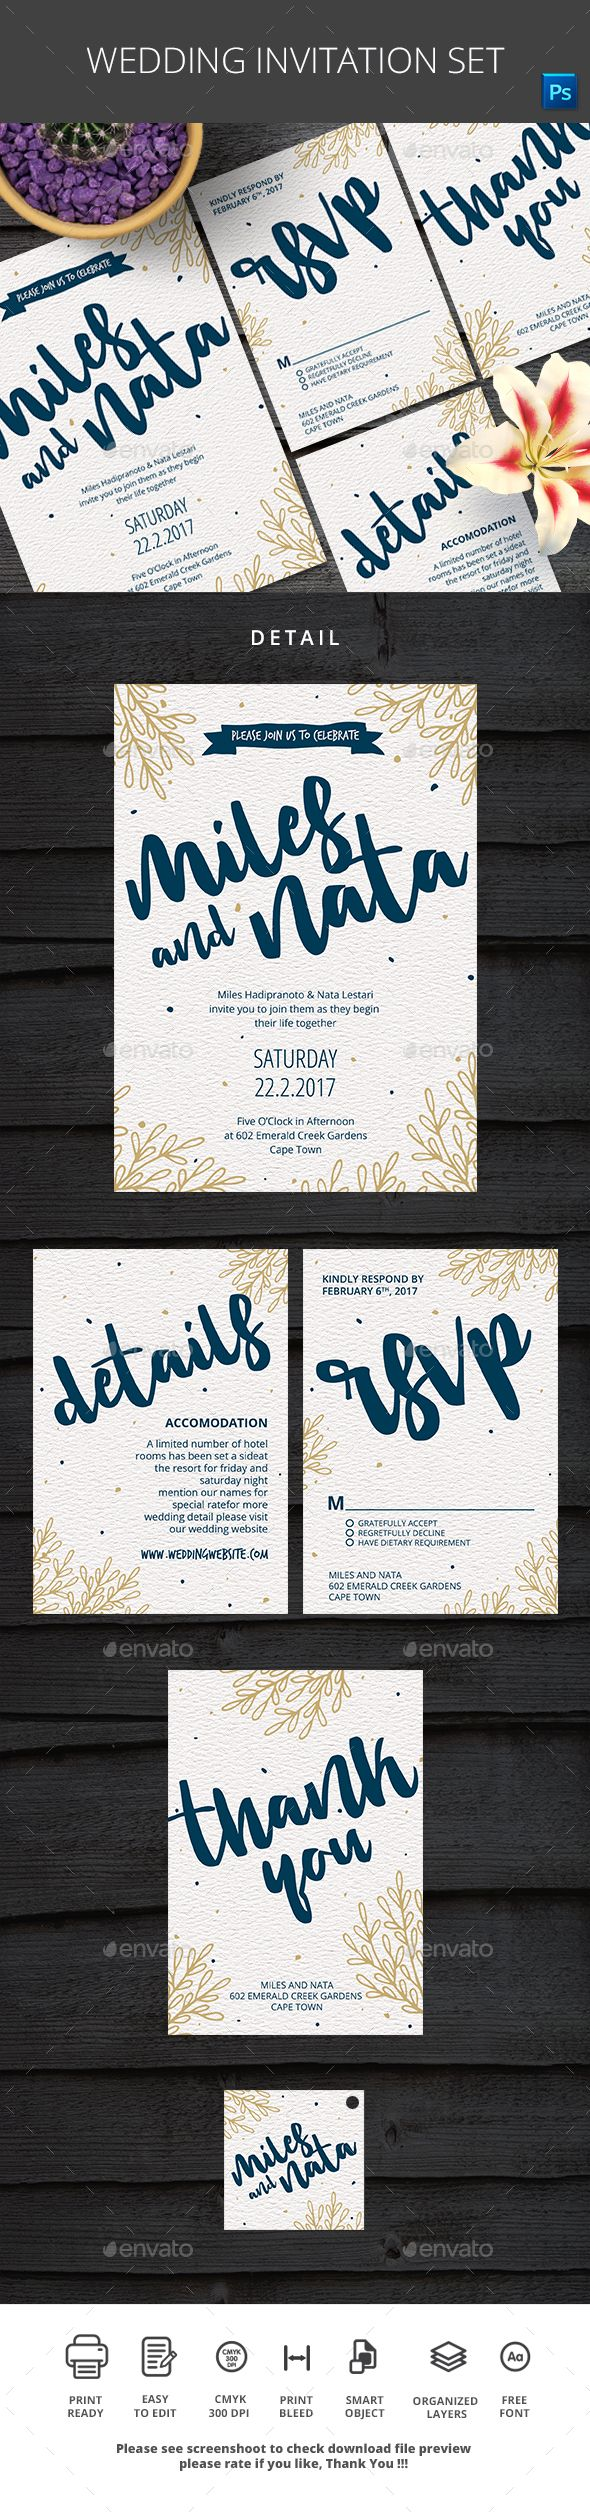 templates for wedding card design%0A Wedding Invitation